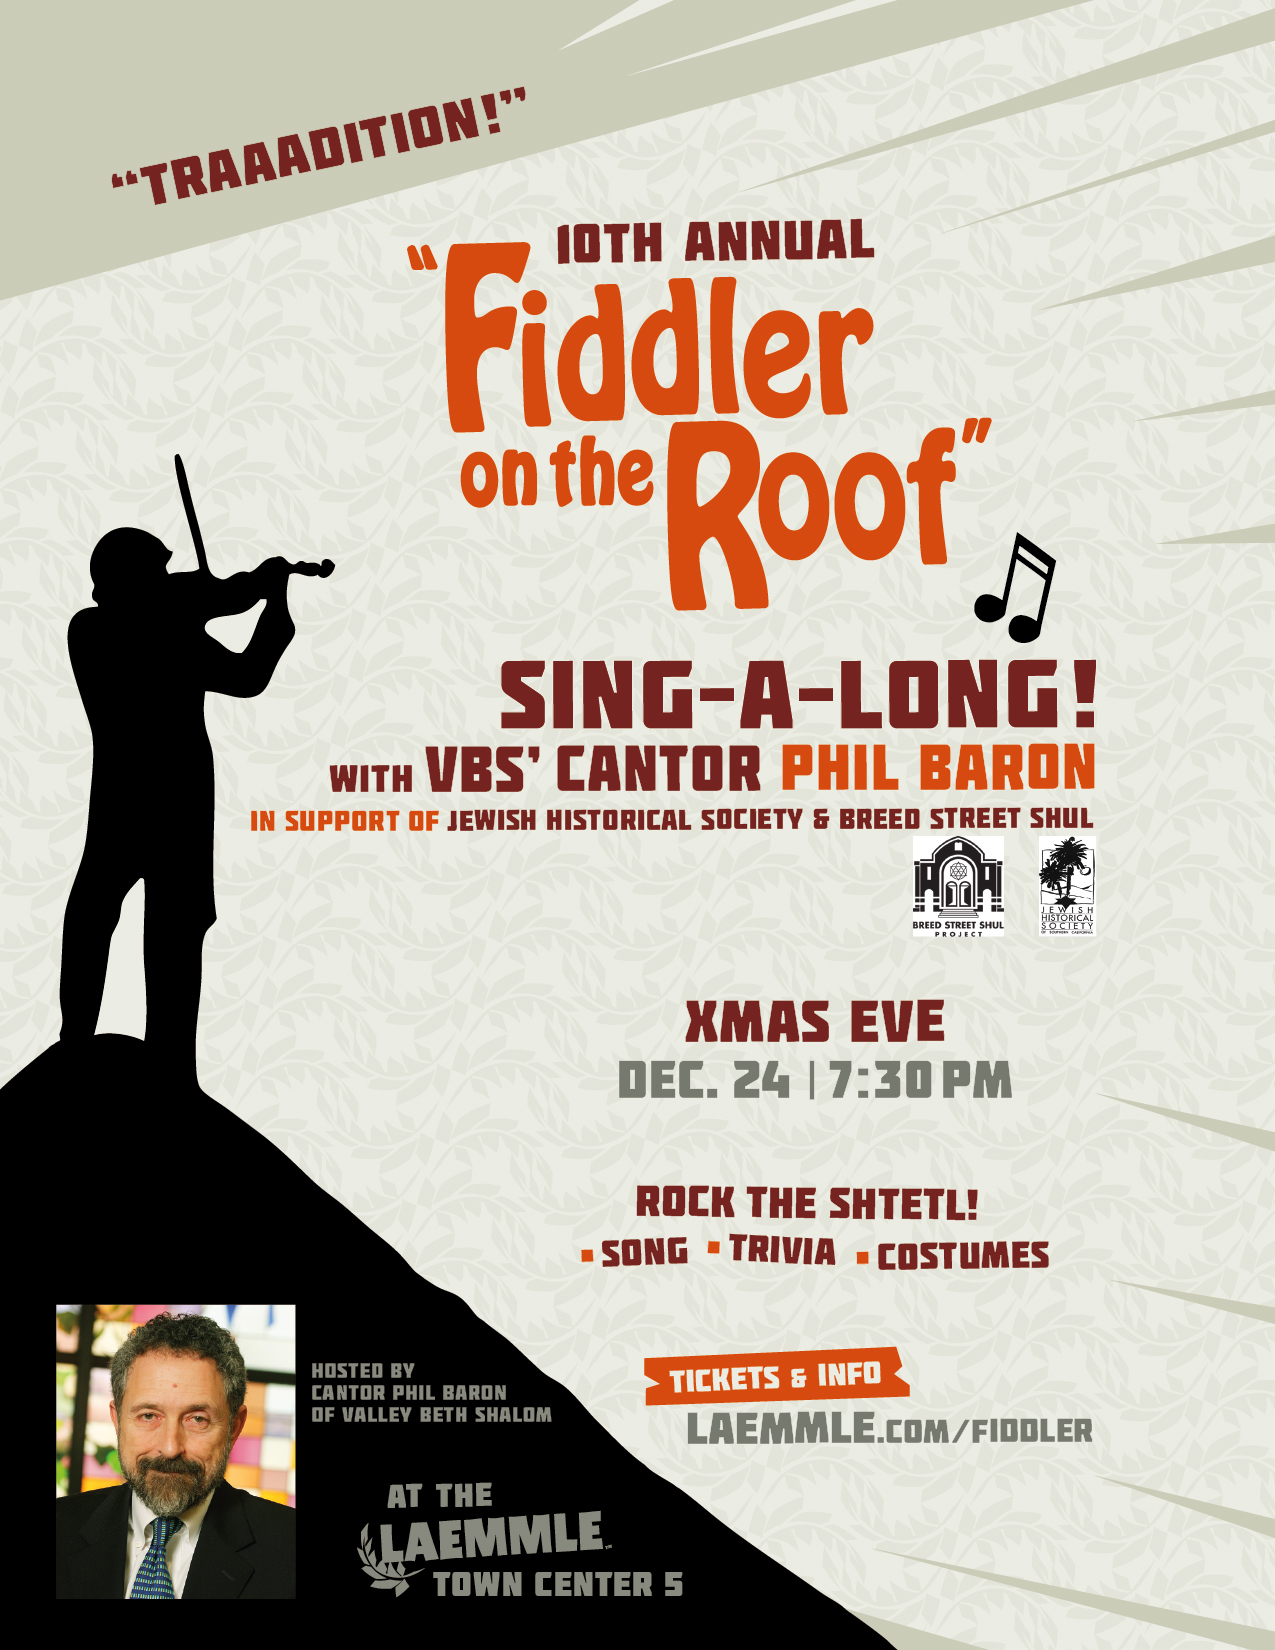 Fiddler_Flyer_Town Center 2017_Baron_v2